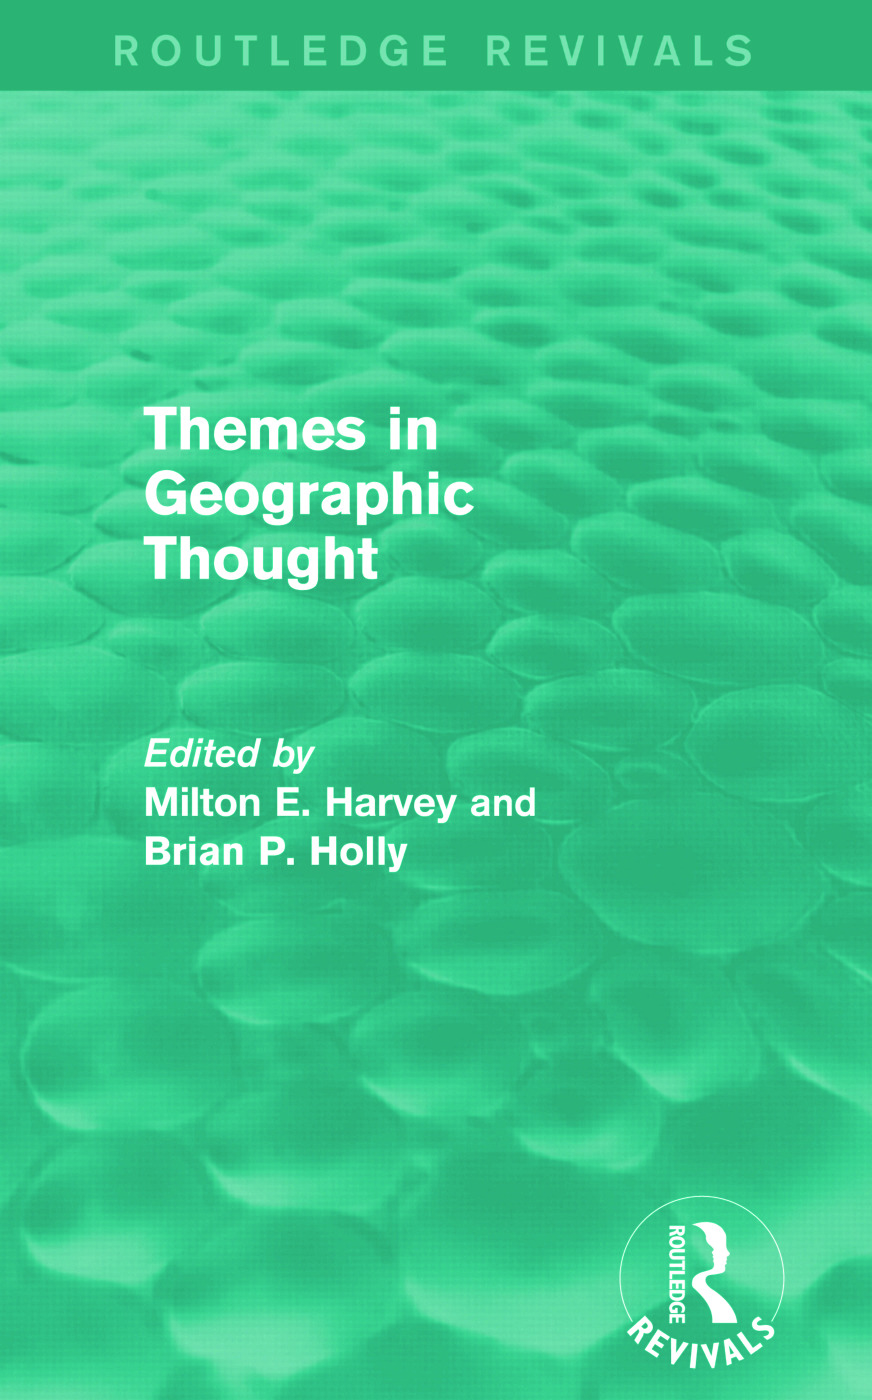 Themes in Geographic Thought (Routledge Revivals)